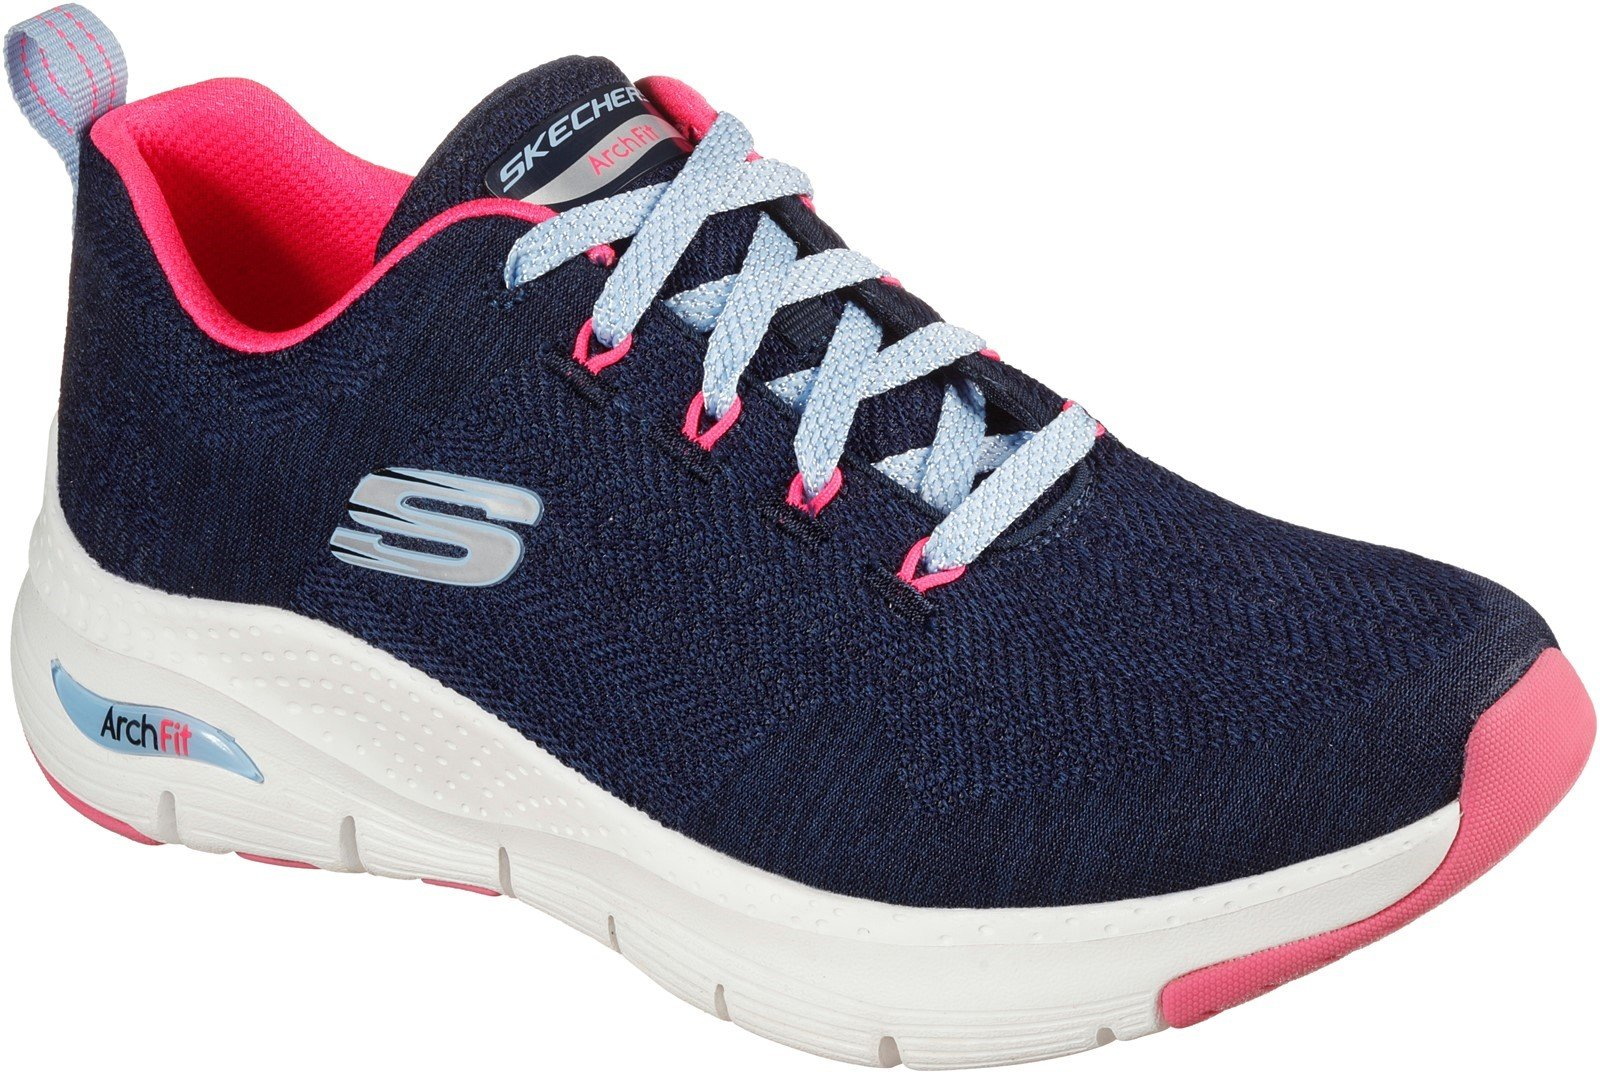 Skechers Women's Arch Fit Comfy Wave Trainer Various Colours 31042 - Navy/Hot pink 3